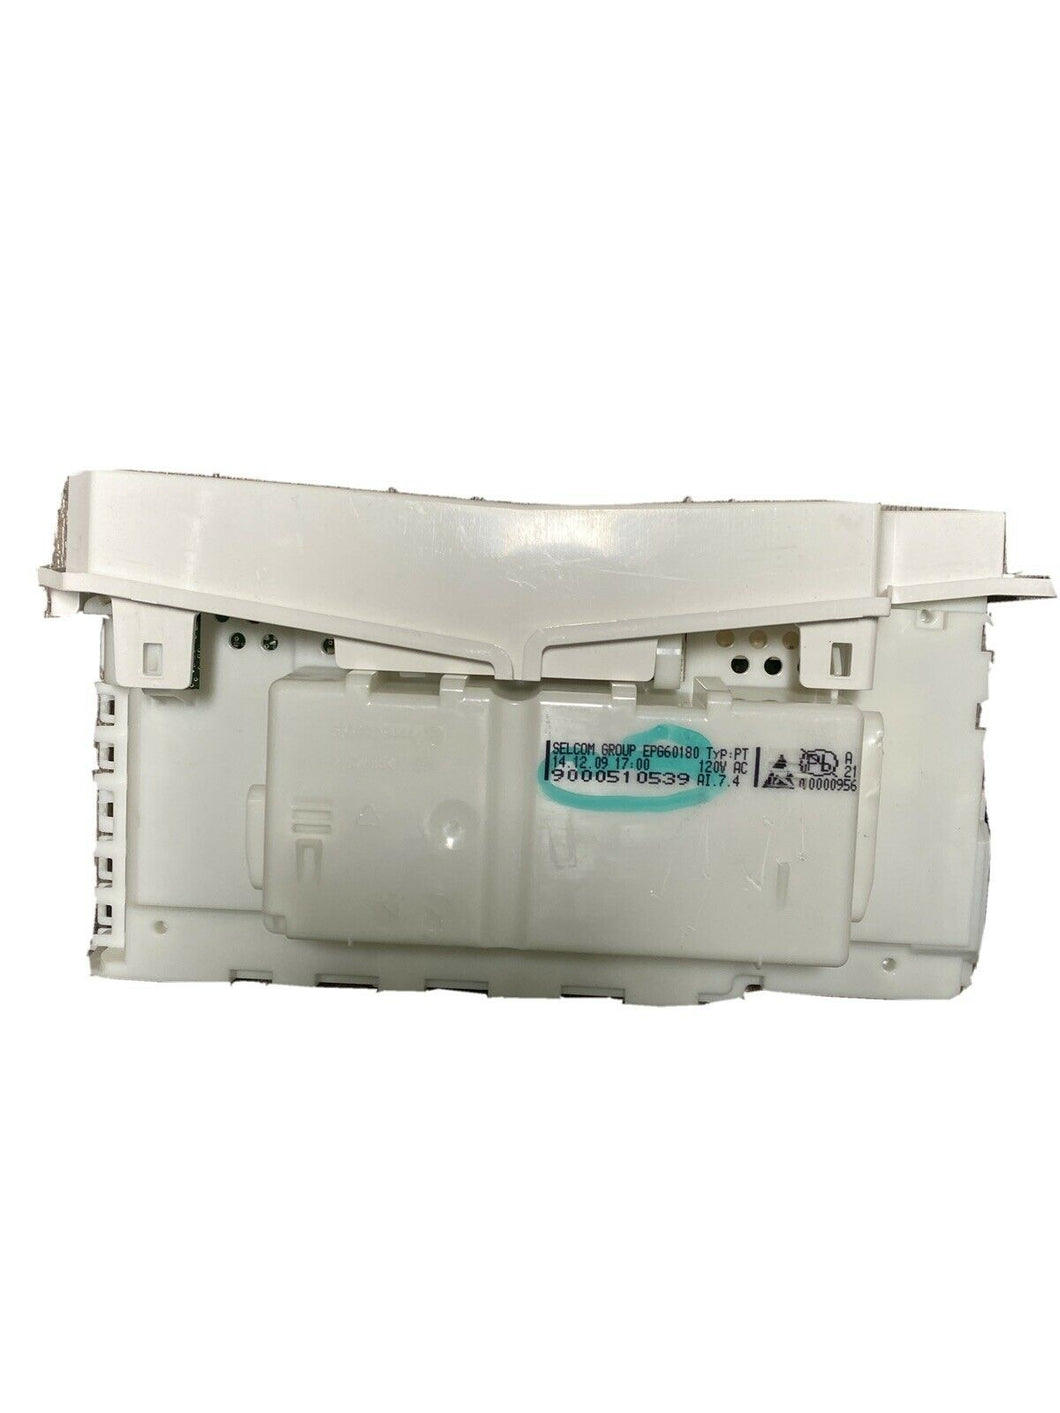 Bosh Dishwasher Control Board 9000510539 EPG60180 | AS Box 117